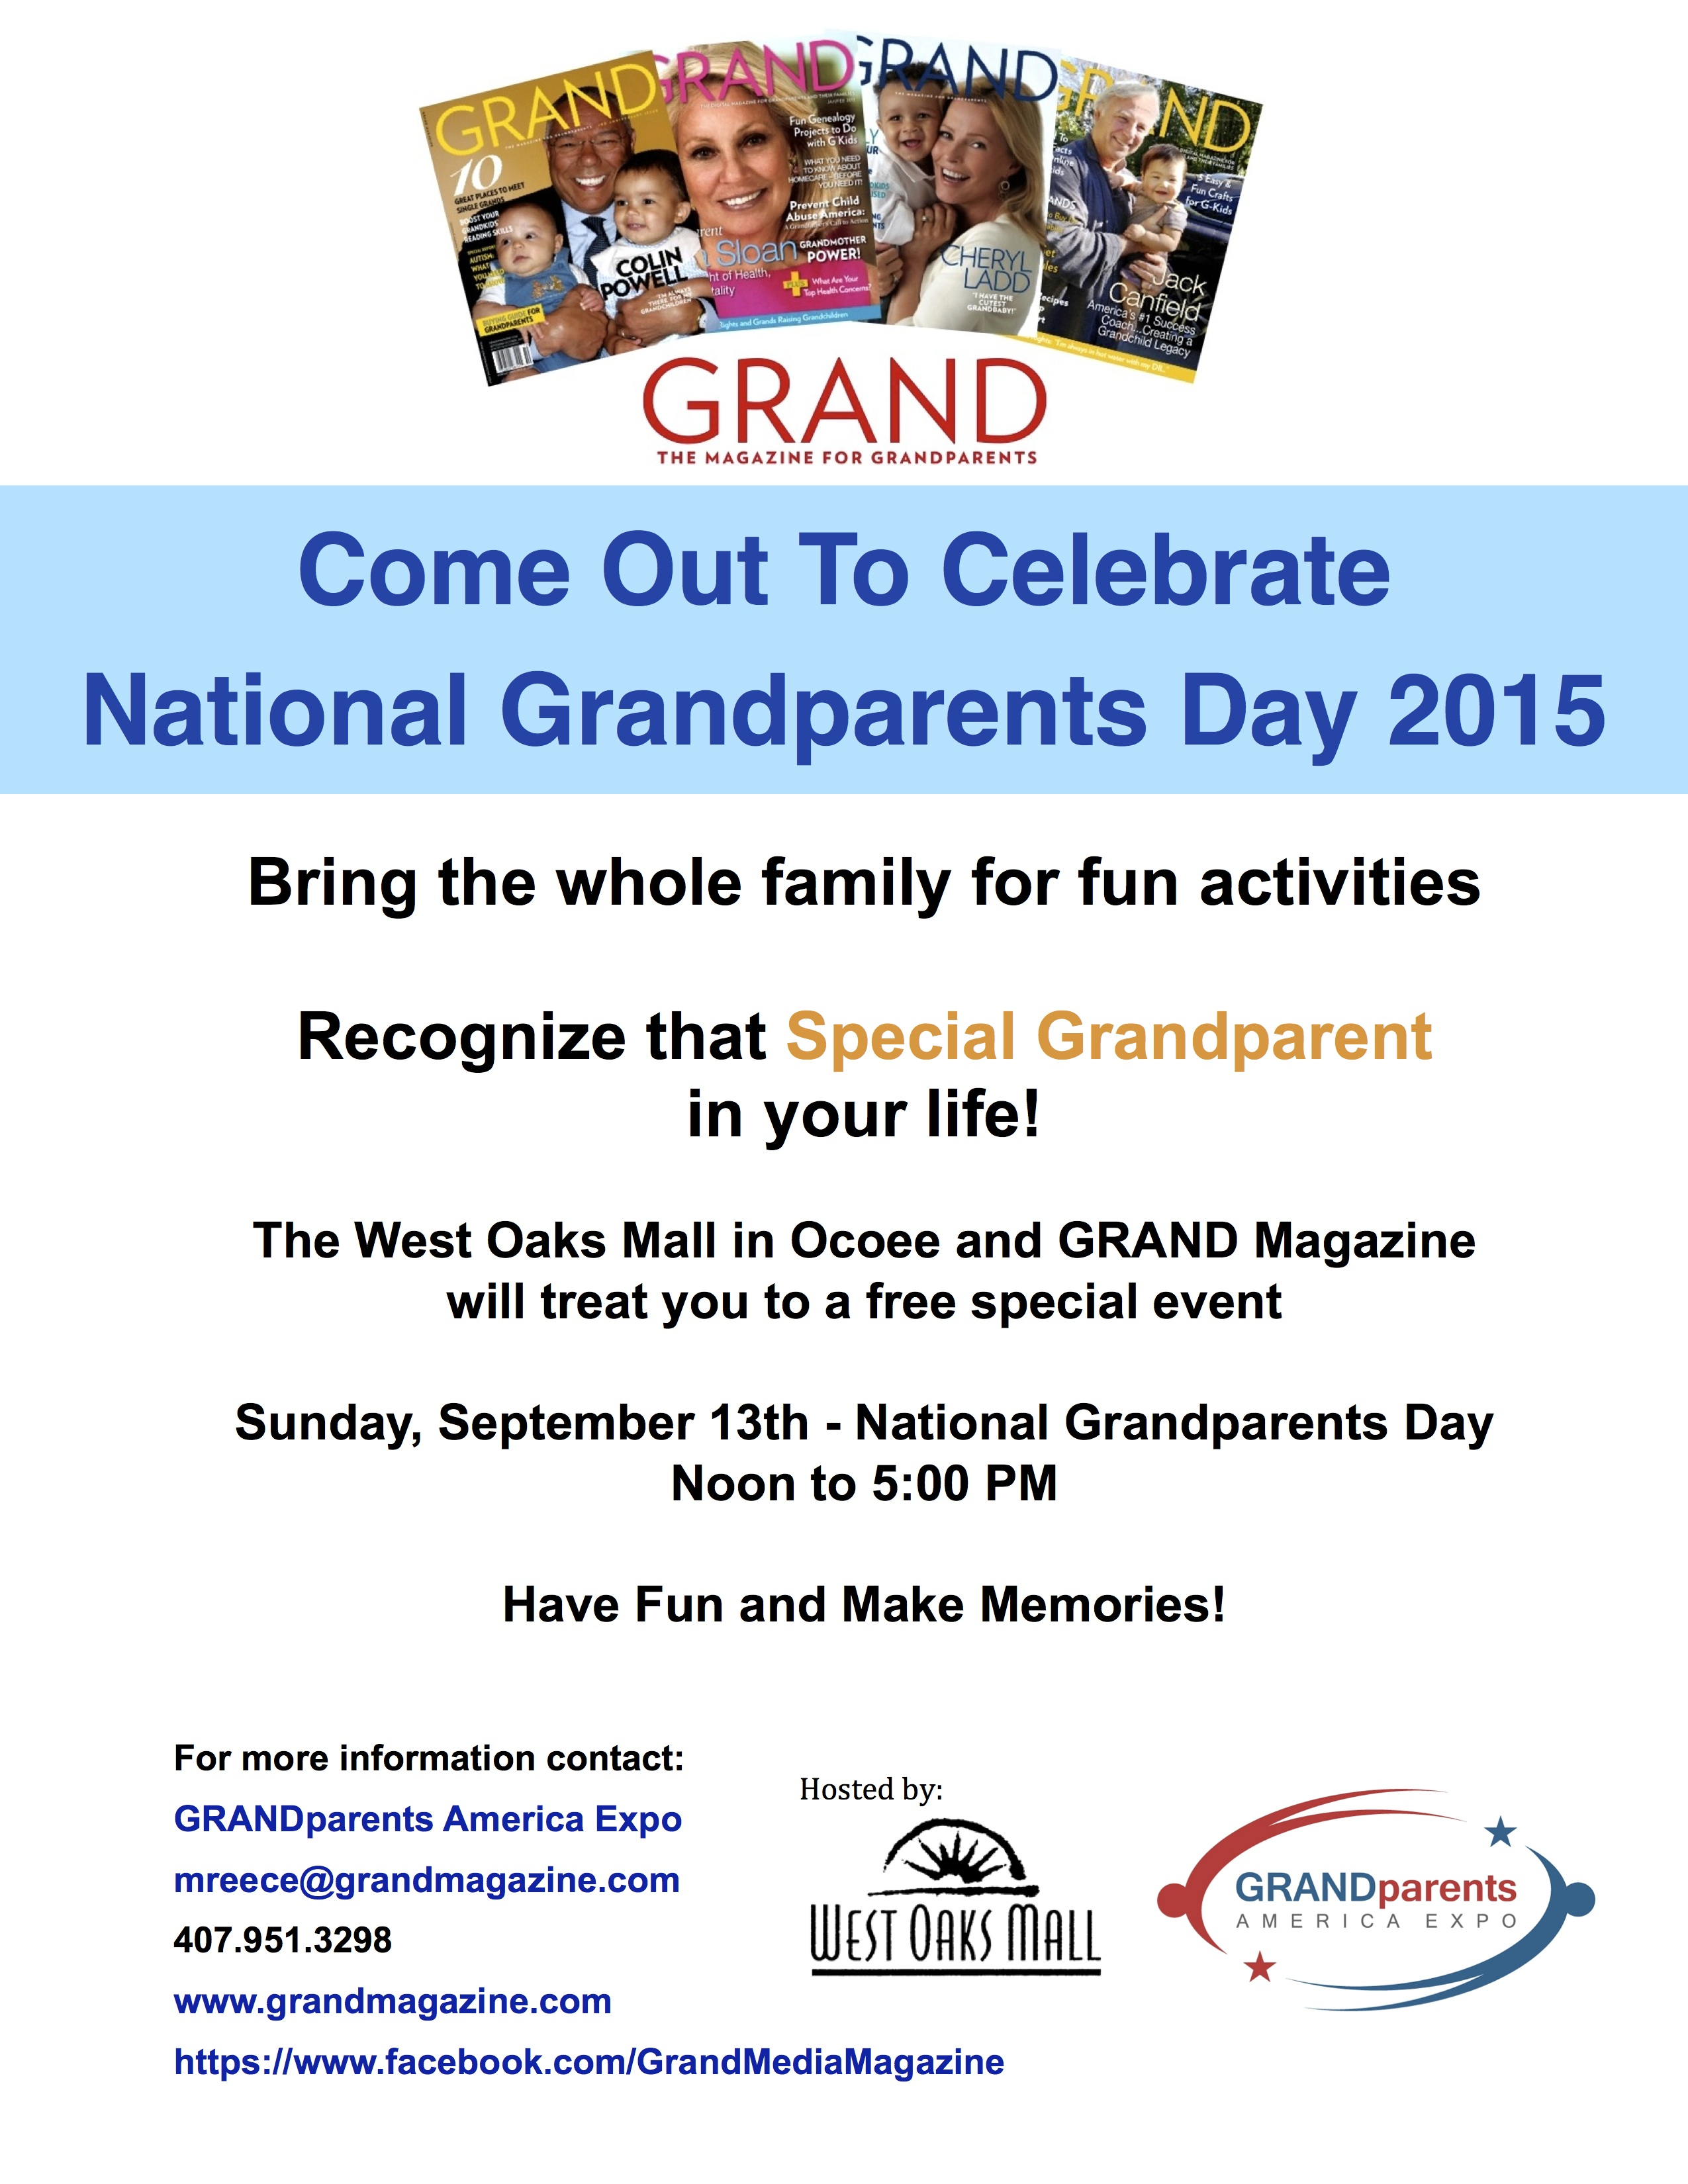 Come out to celebrate National Grandparents Day 2015